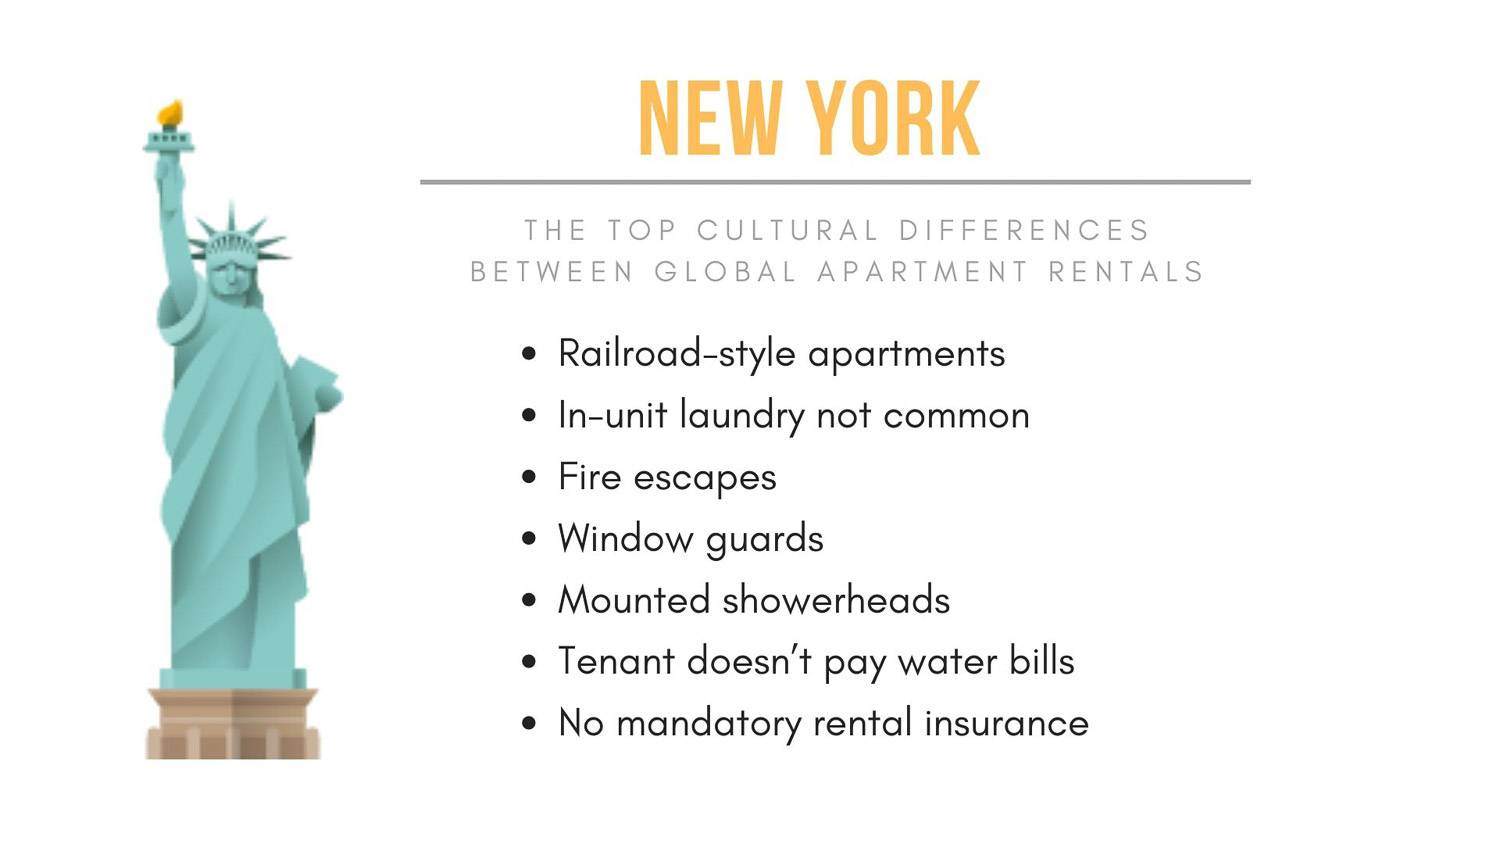 New York Habitat infographic describing the unique features of New York apartment rentals.